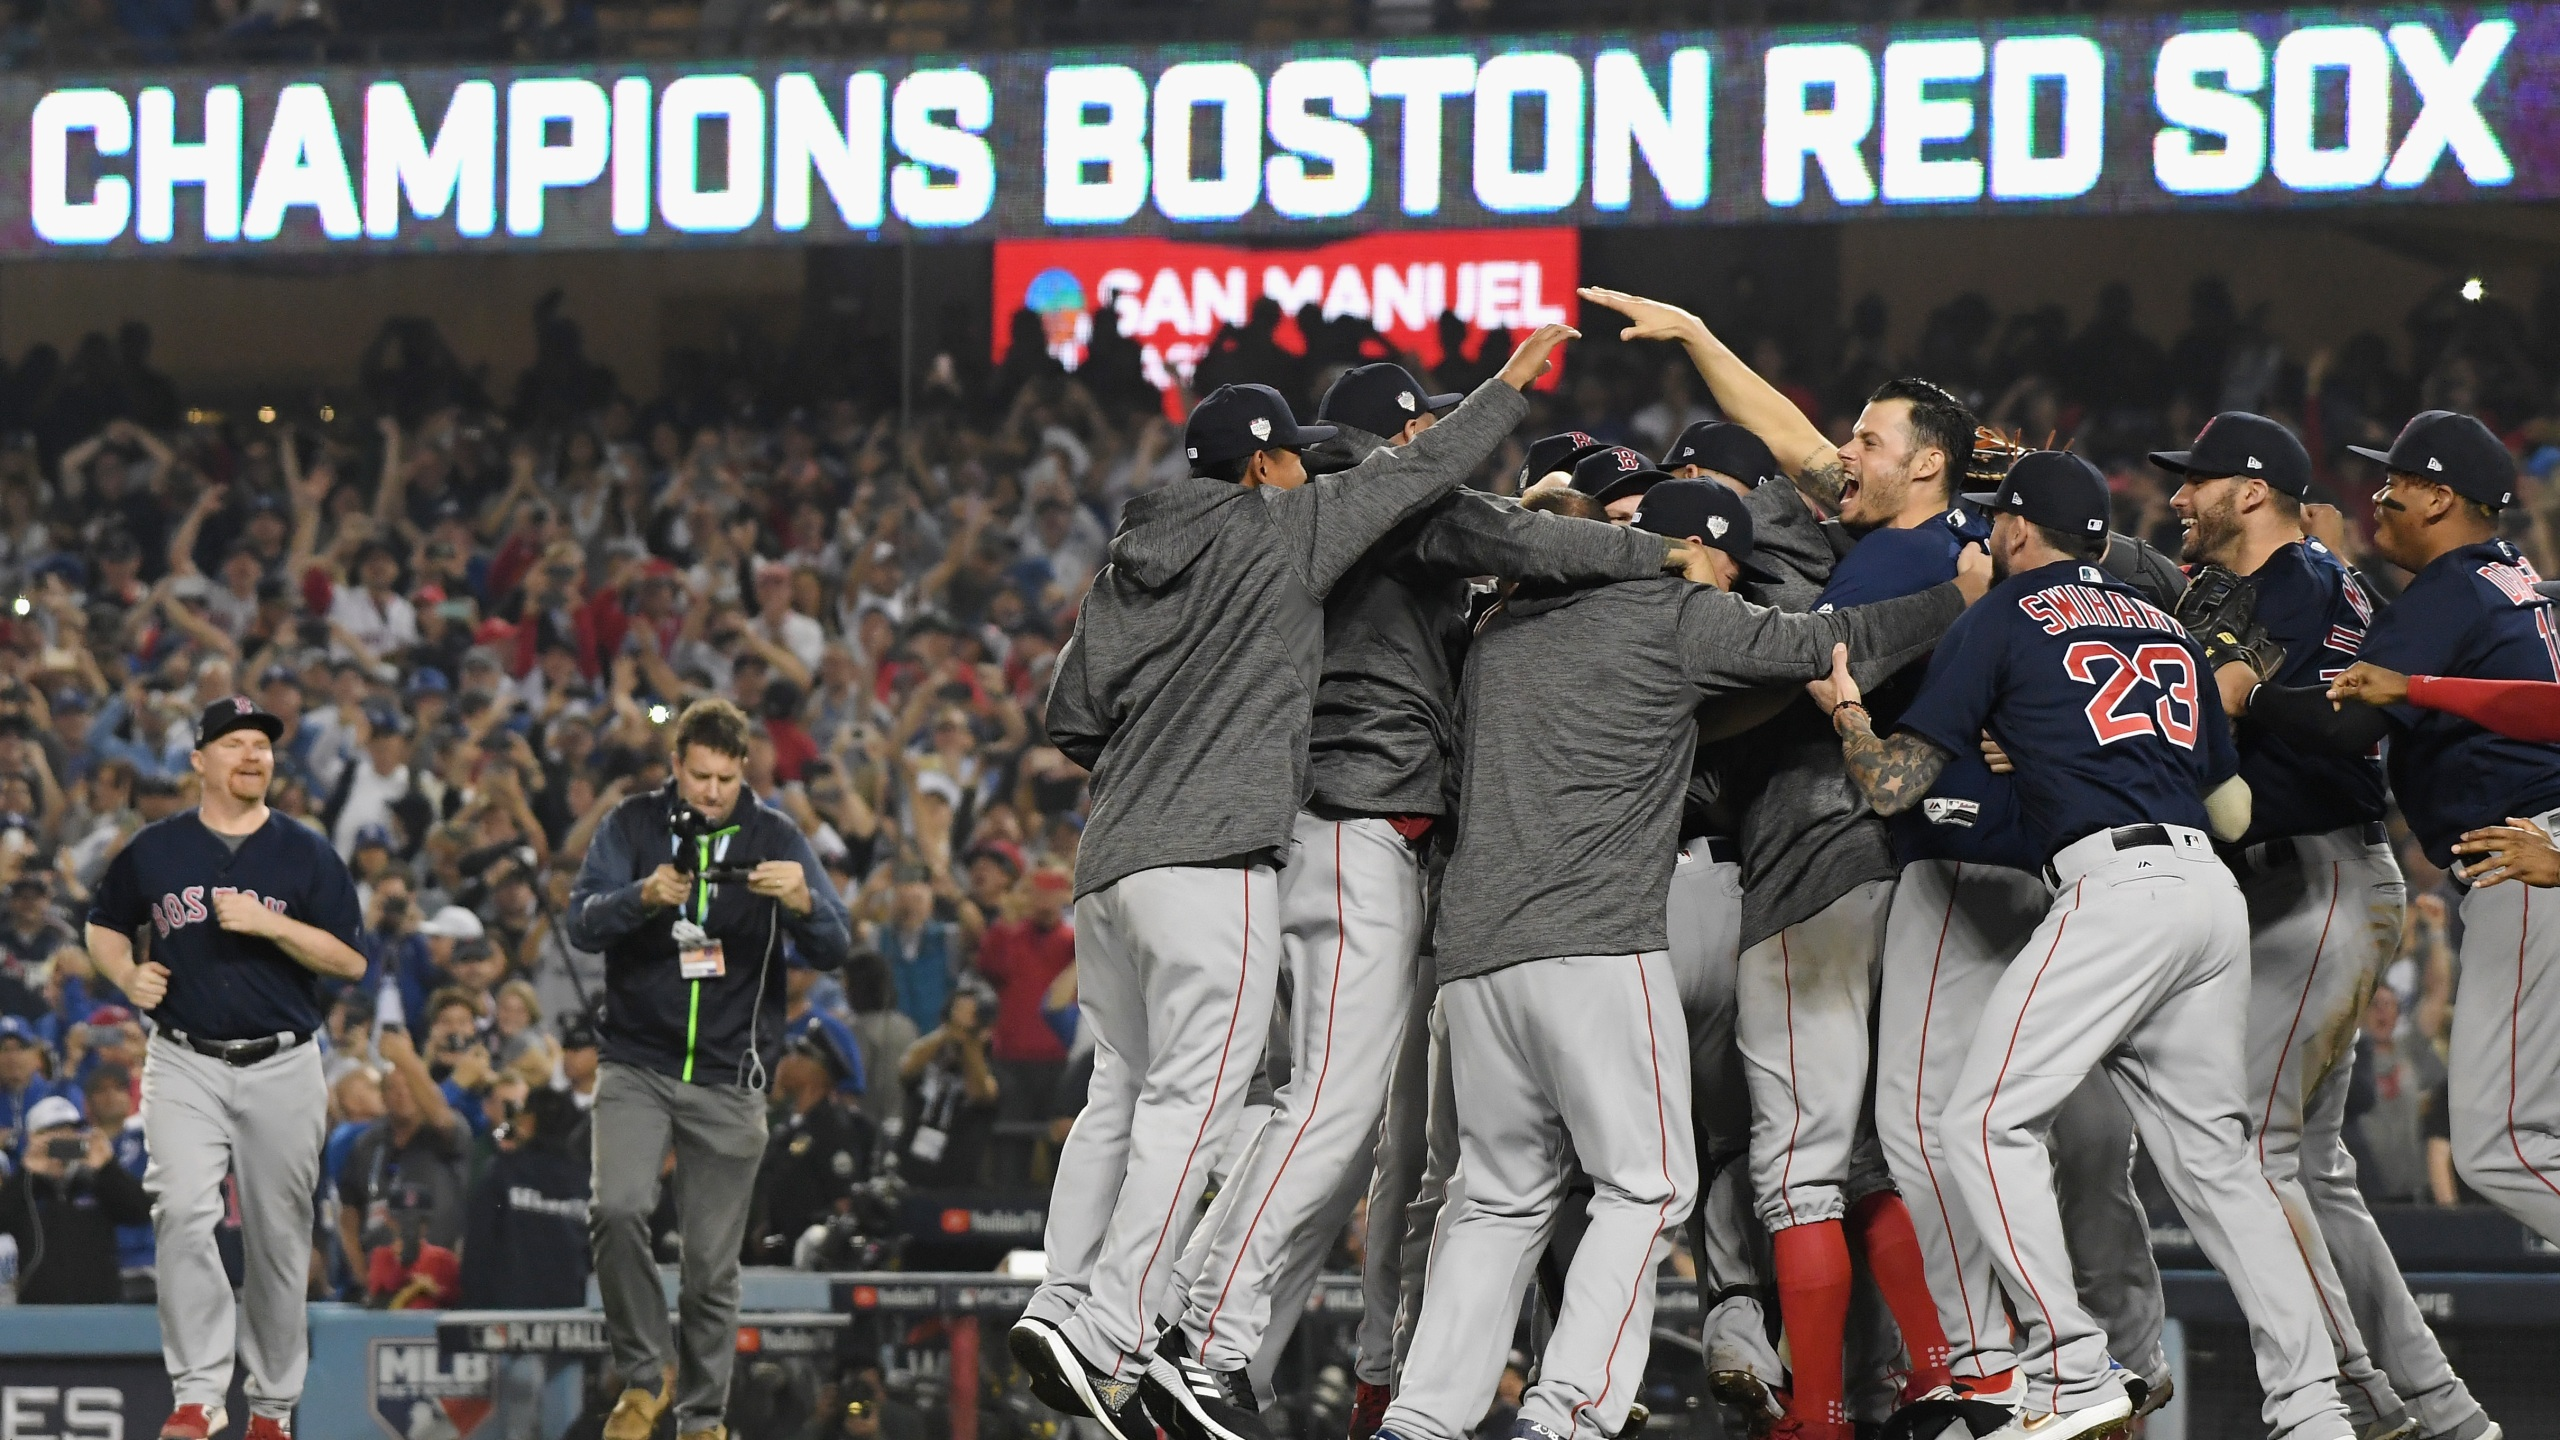 Red Sox World Series